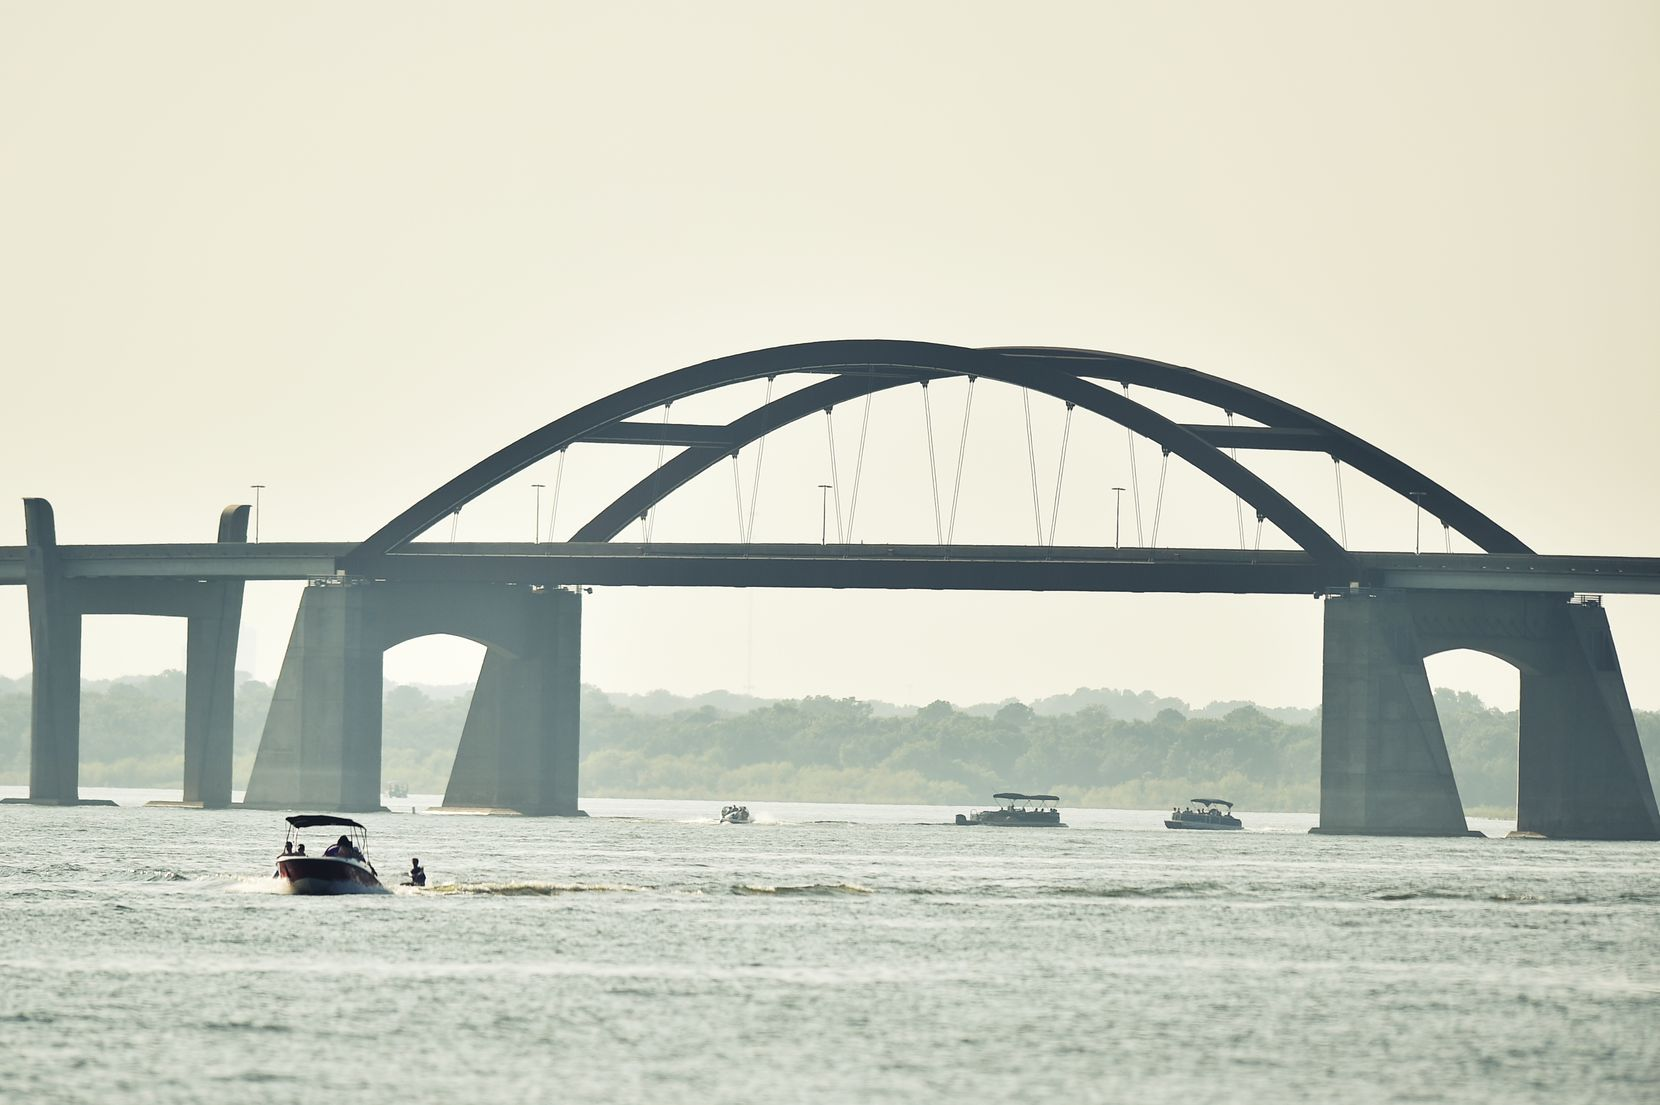 Boaters enjoy the warm sunny weather on Lewisville Lake near the Lewisville Lake toll bridge.